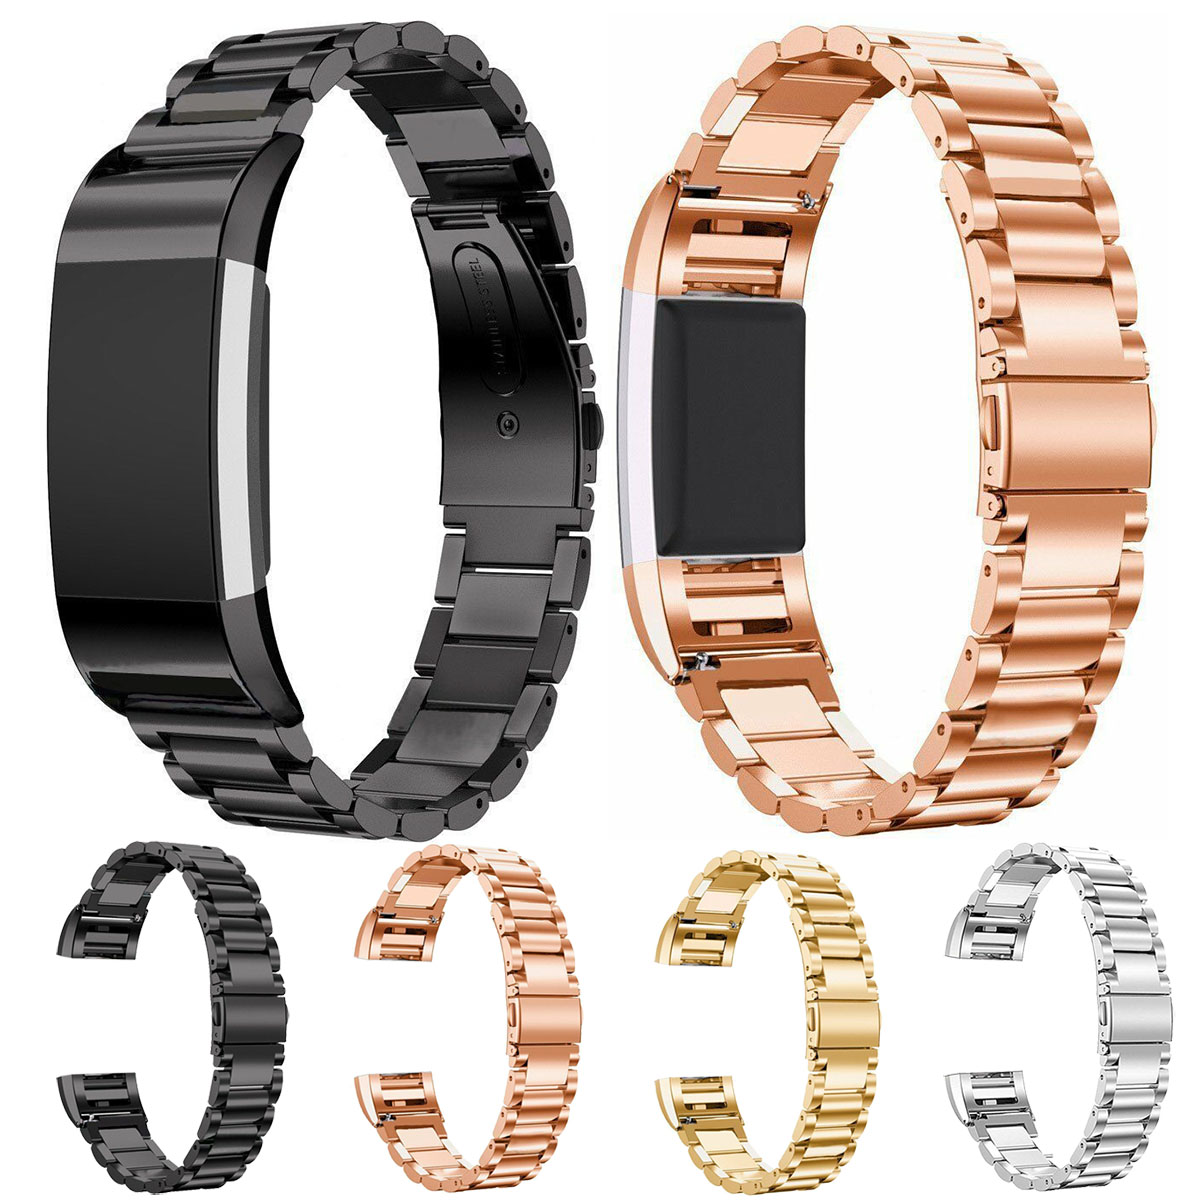 Essidi For Fitbit Charge 2 Stainless Steel Watch Strap Women Men Metal Smart Bracelet Strap Band For Fitbit Charge 2 Parts